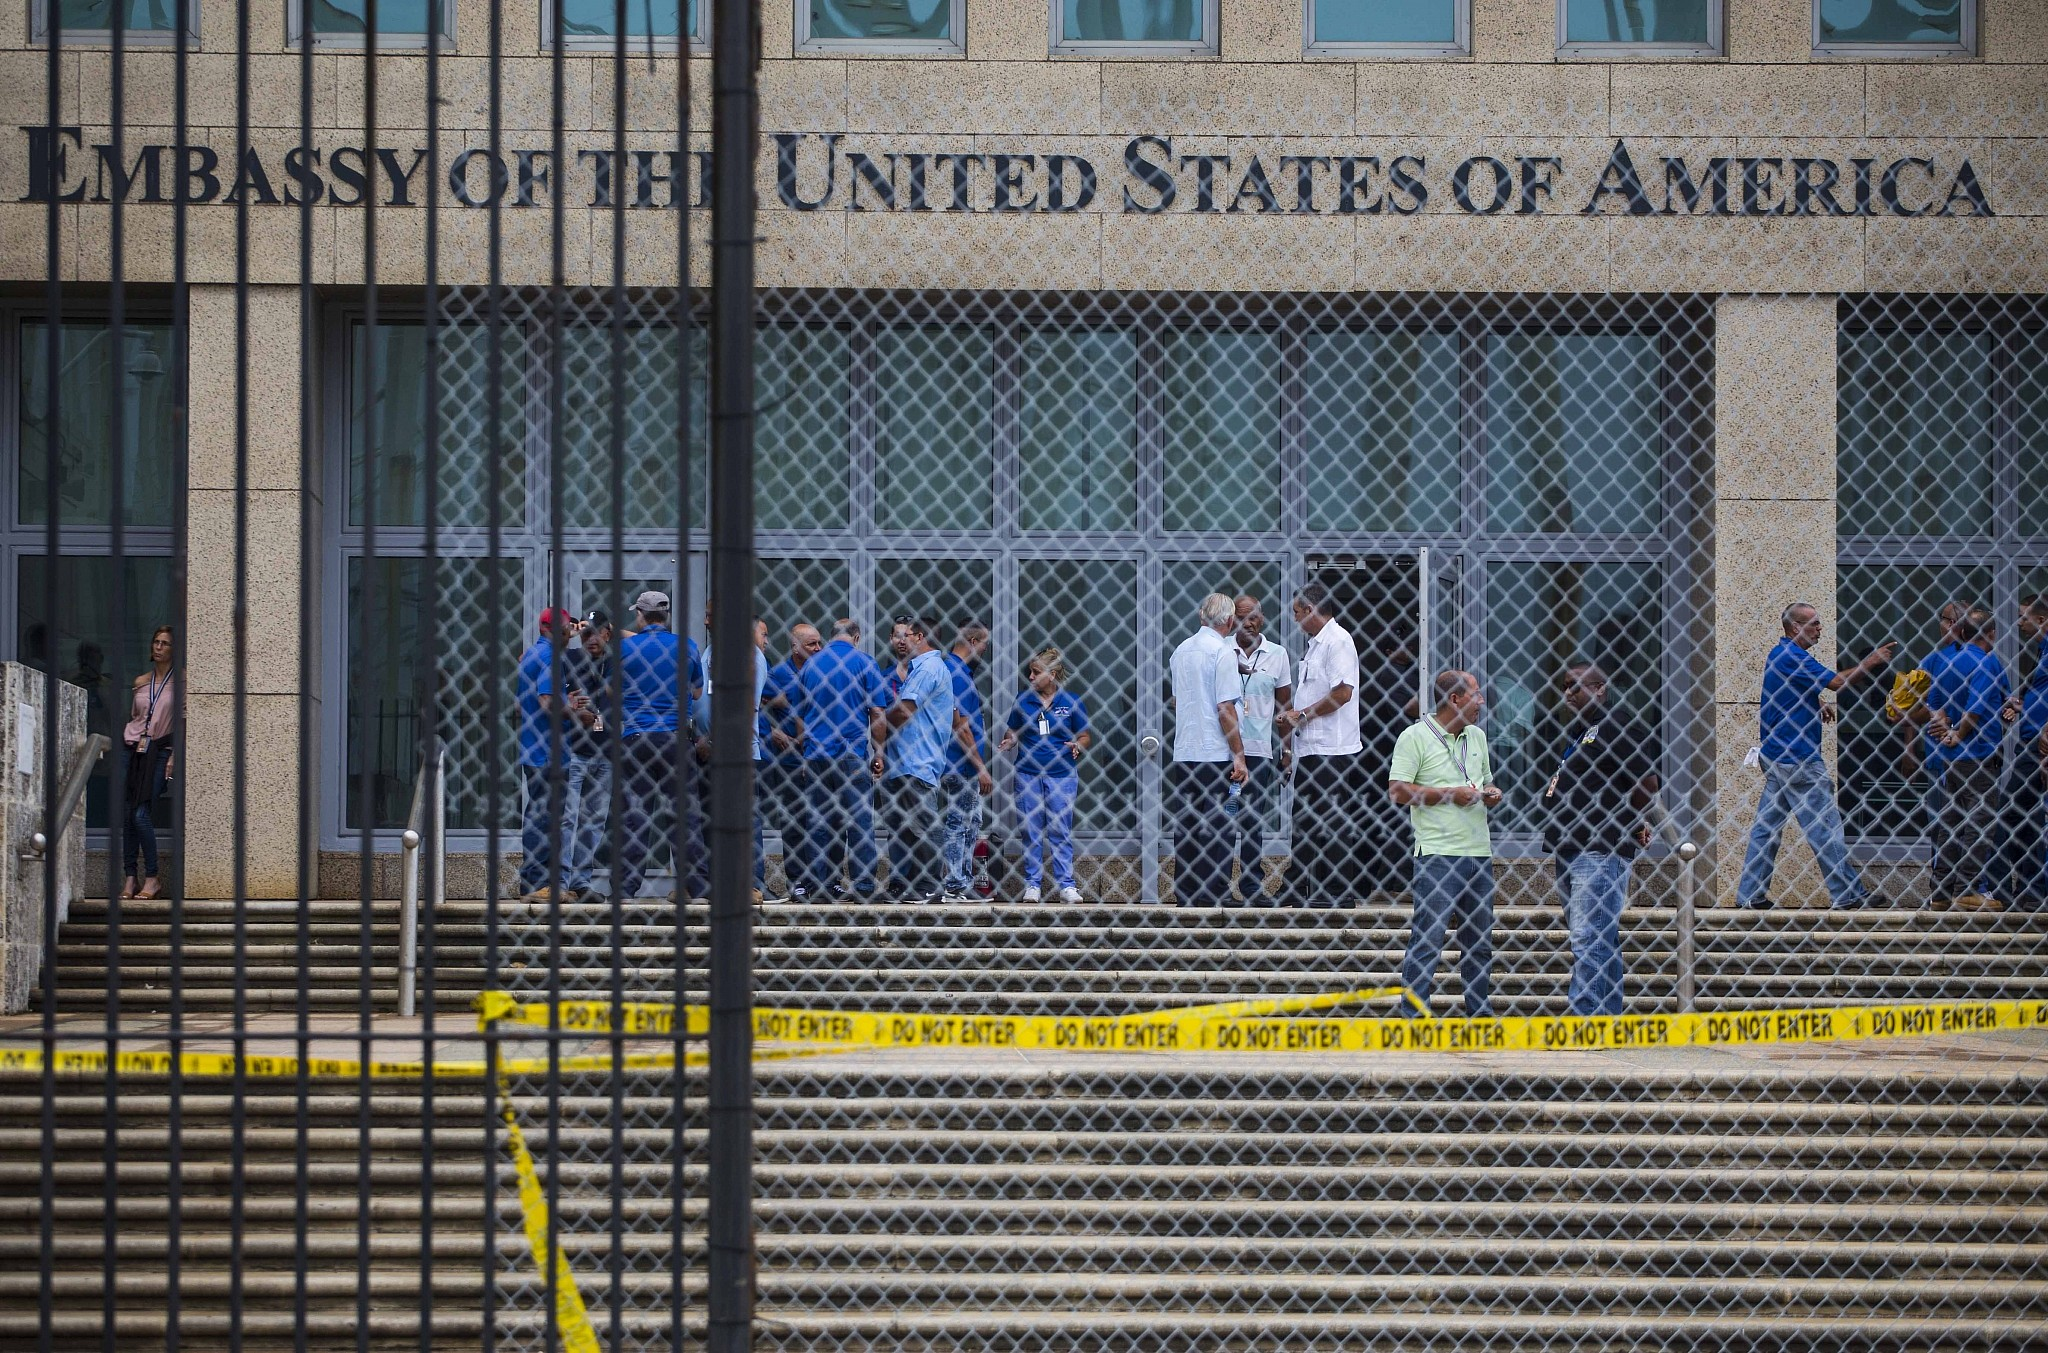 United States warns against travel to Cuba, cuts embassy staff after mysterious 'attacks'